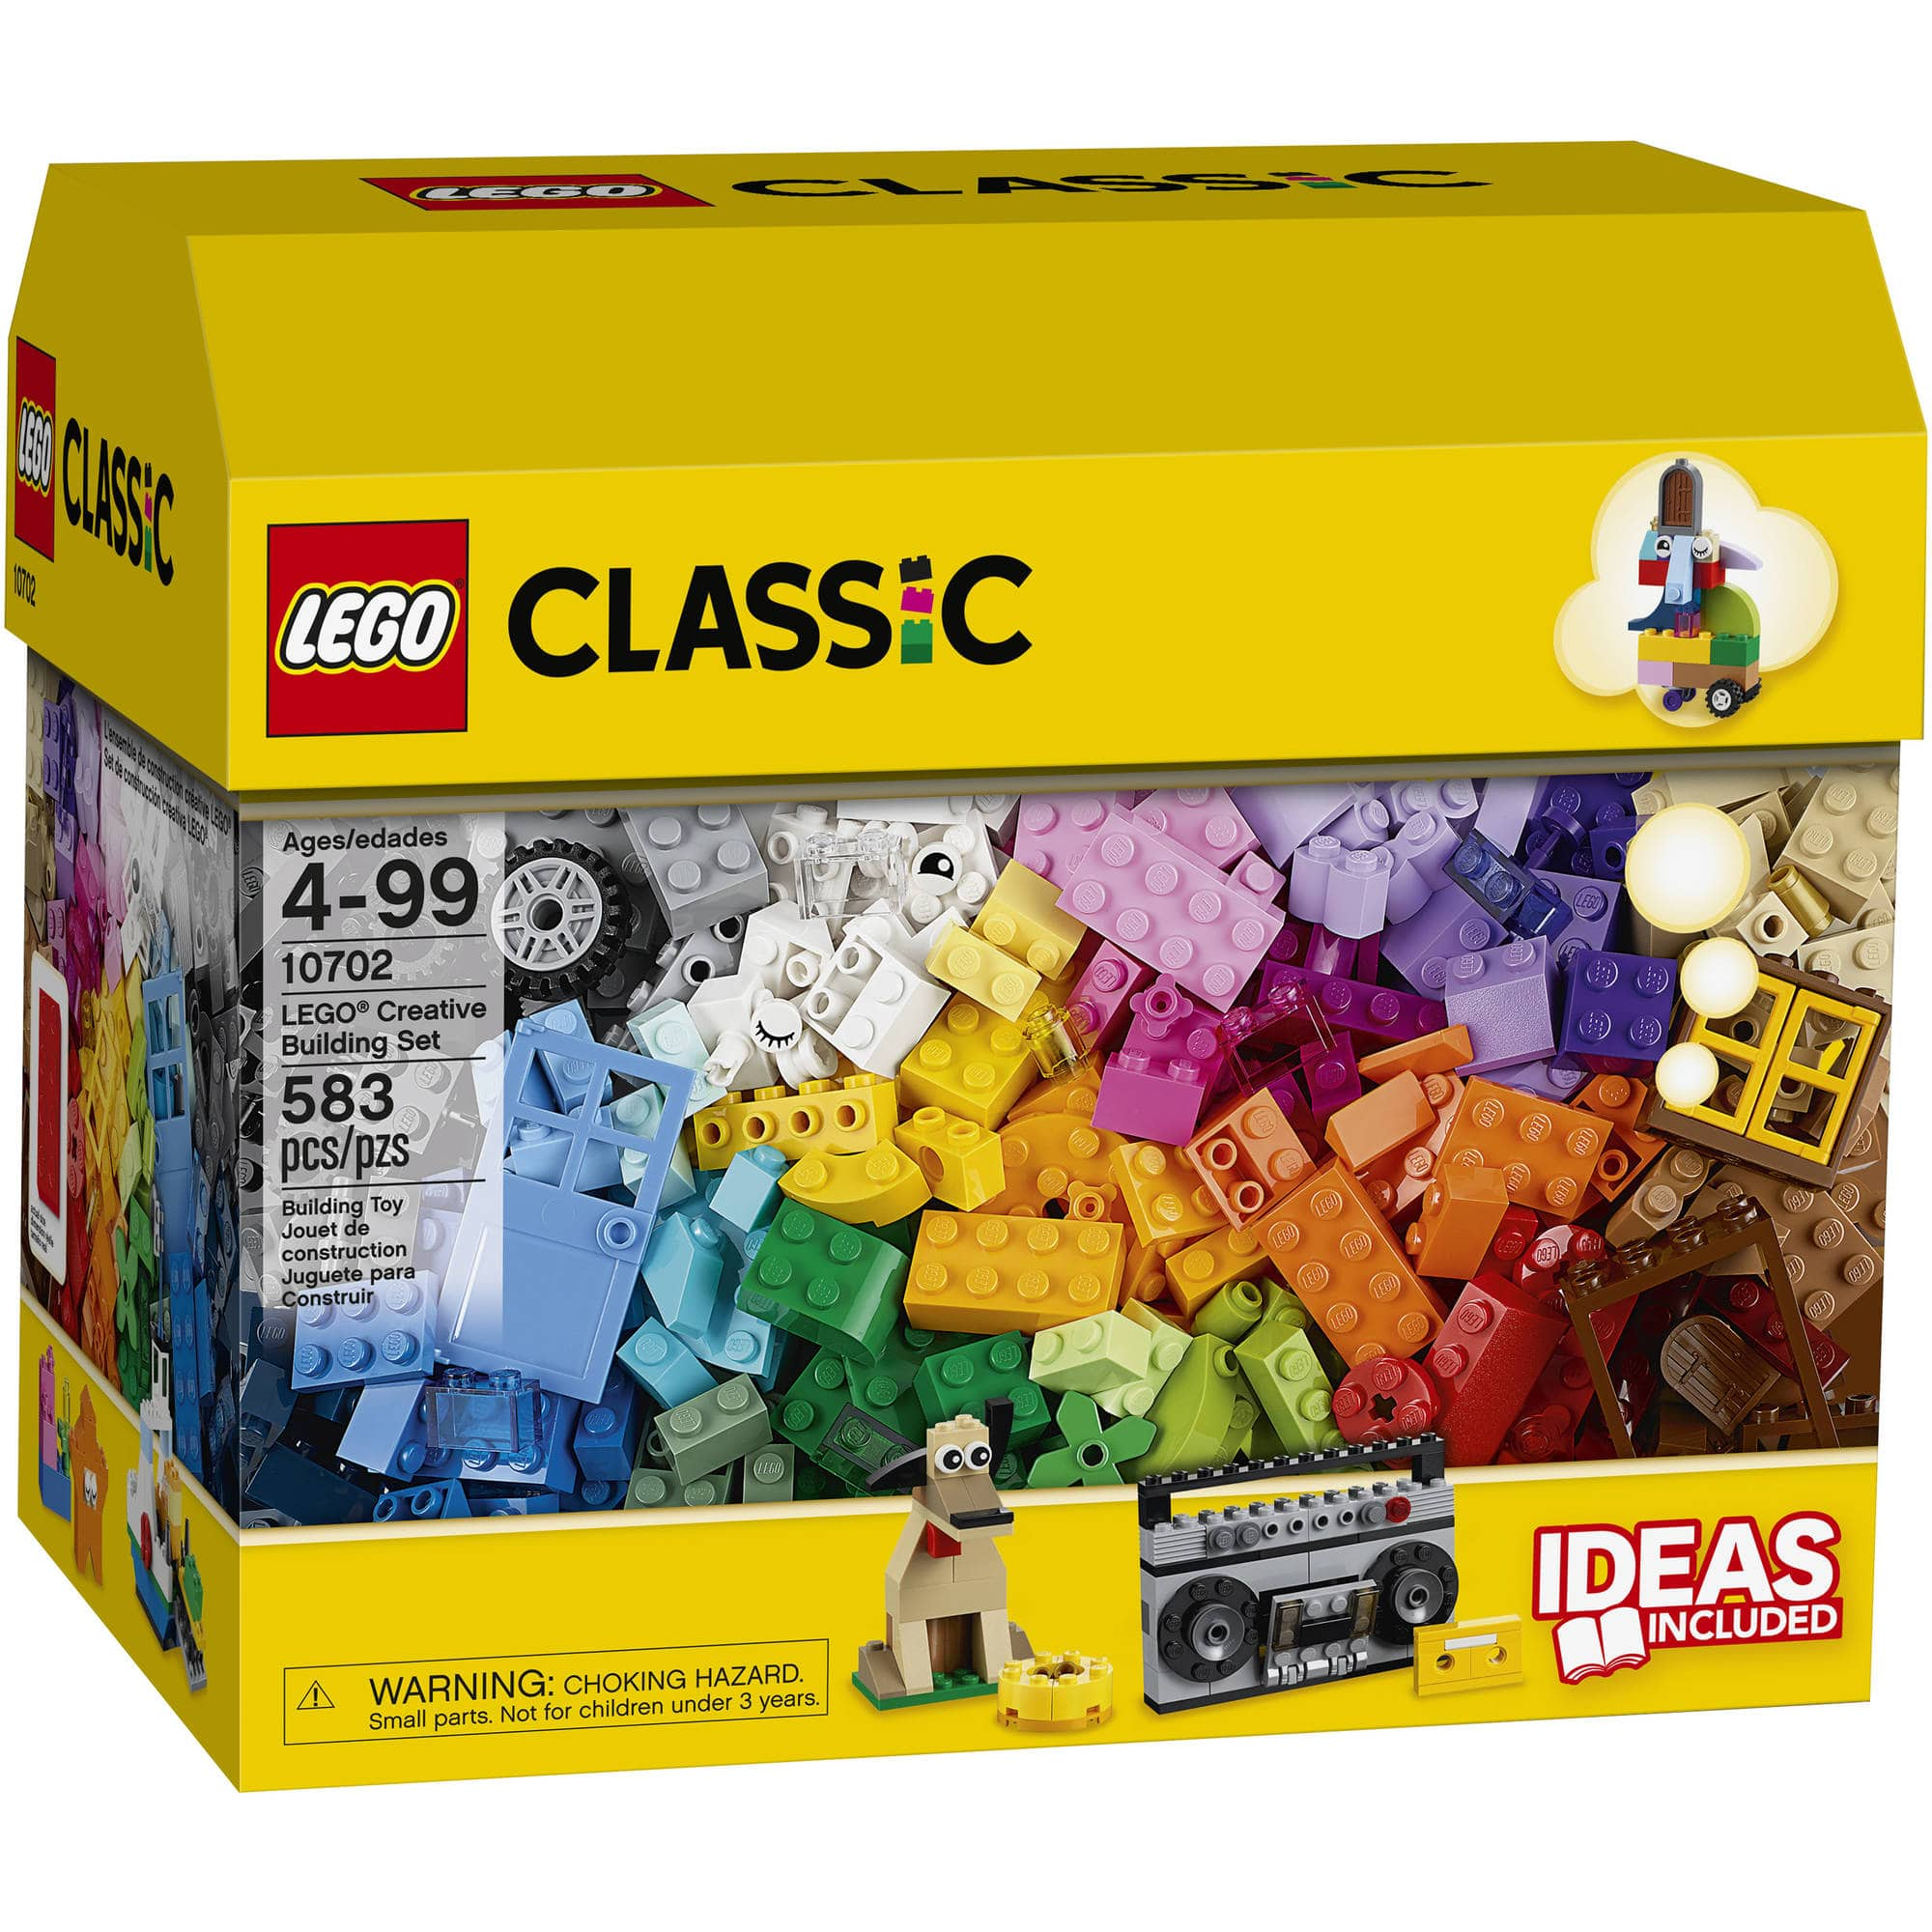 LEGO Classic Creative Building Set 10702 (583-piece) $13 or $10 BM (YMMV)